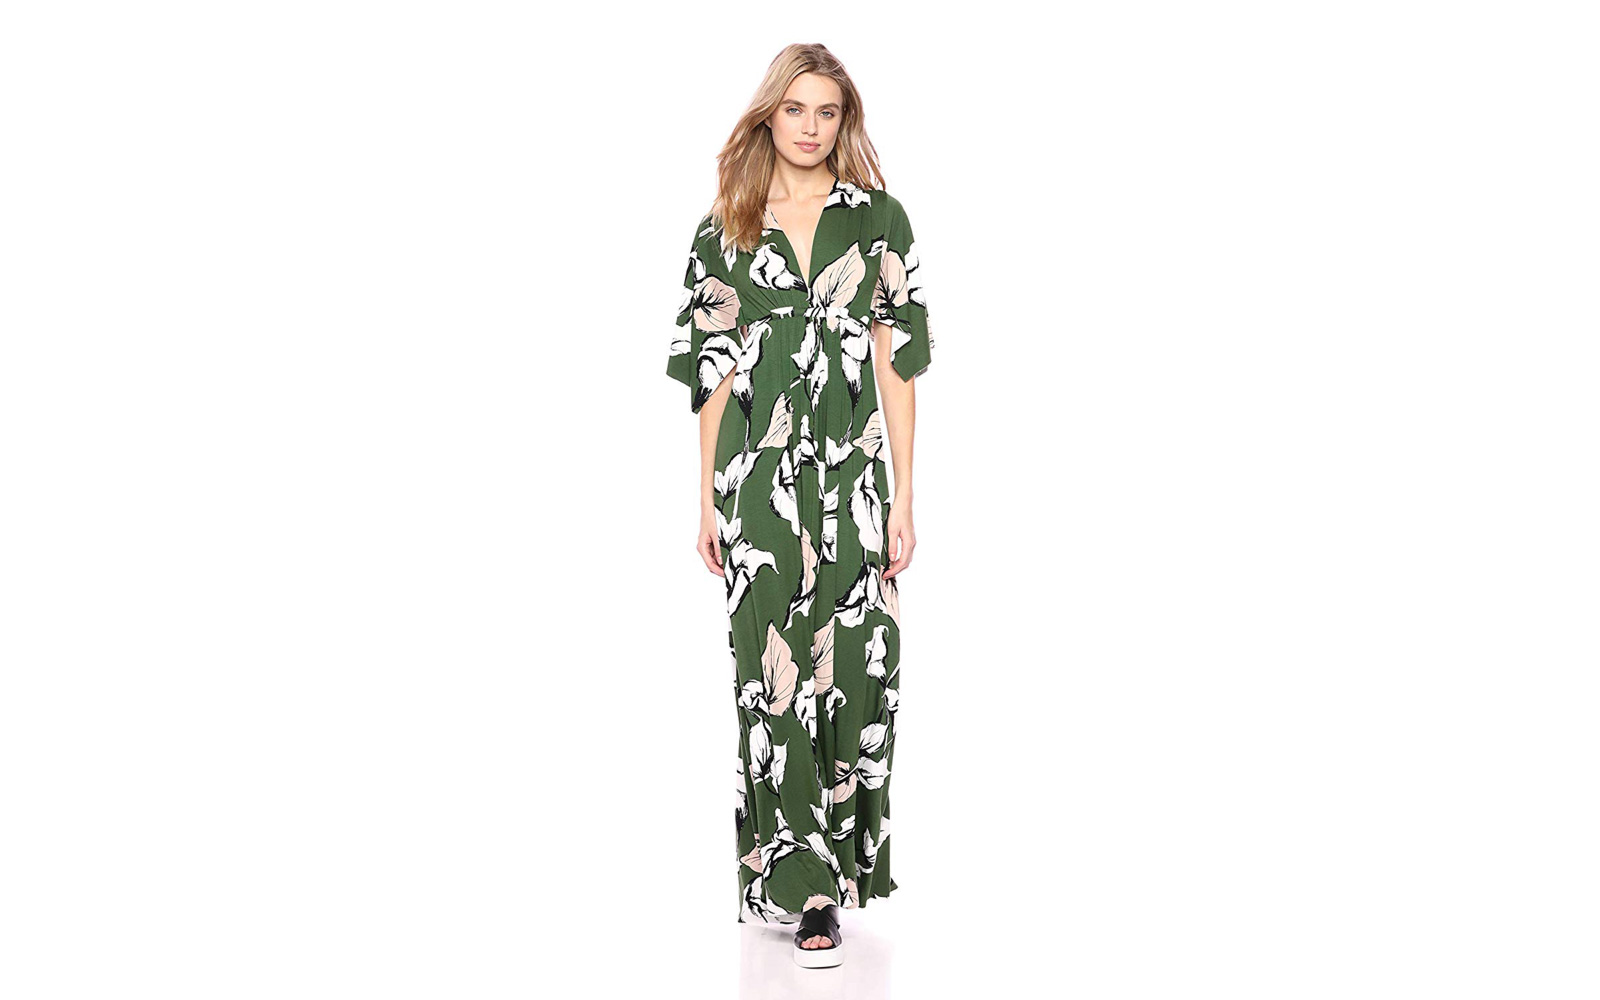 fb5aa2f607d0 15 Breezy Maxi Dresses You'll Be Wearing On Repeat This Summer ...